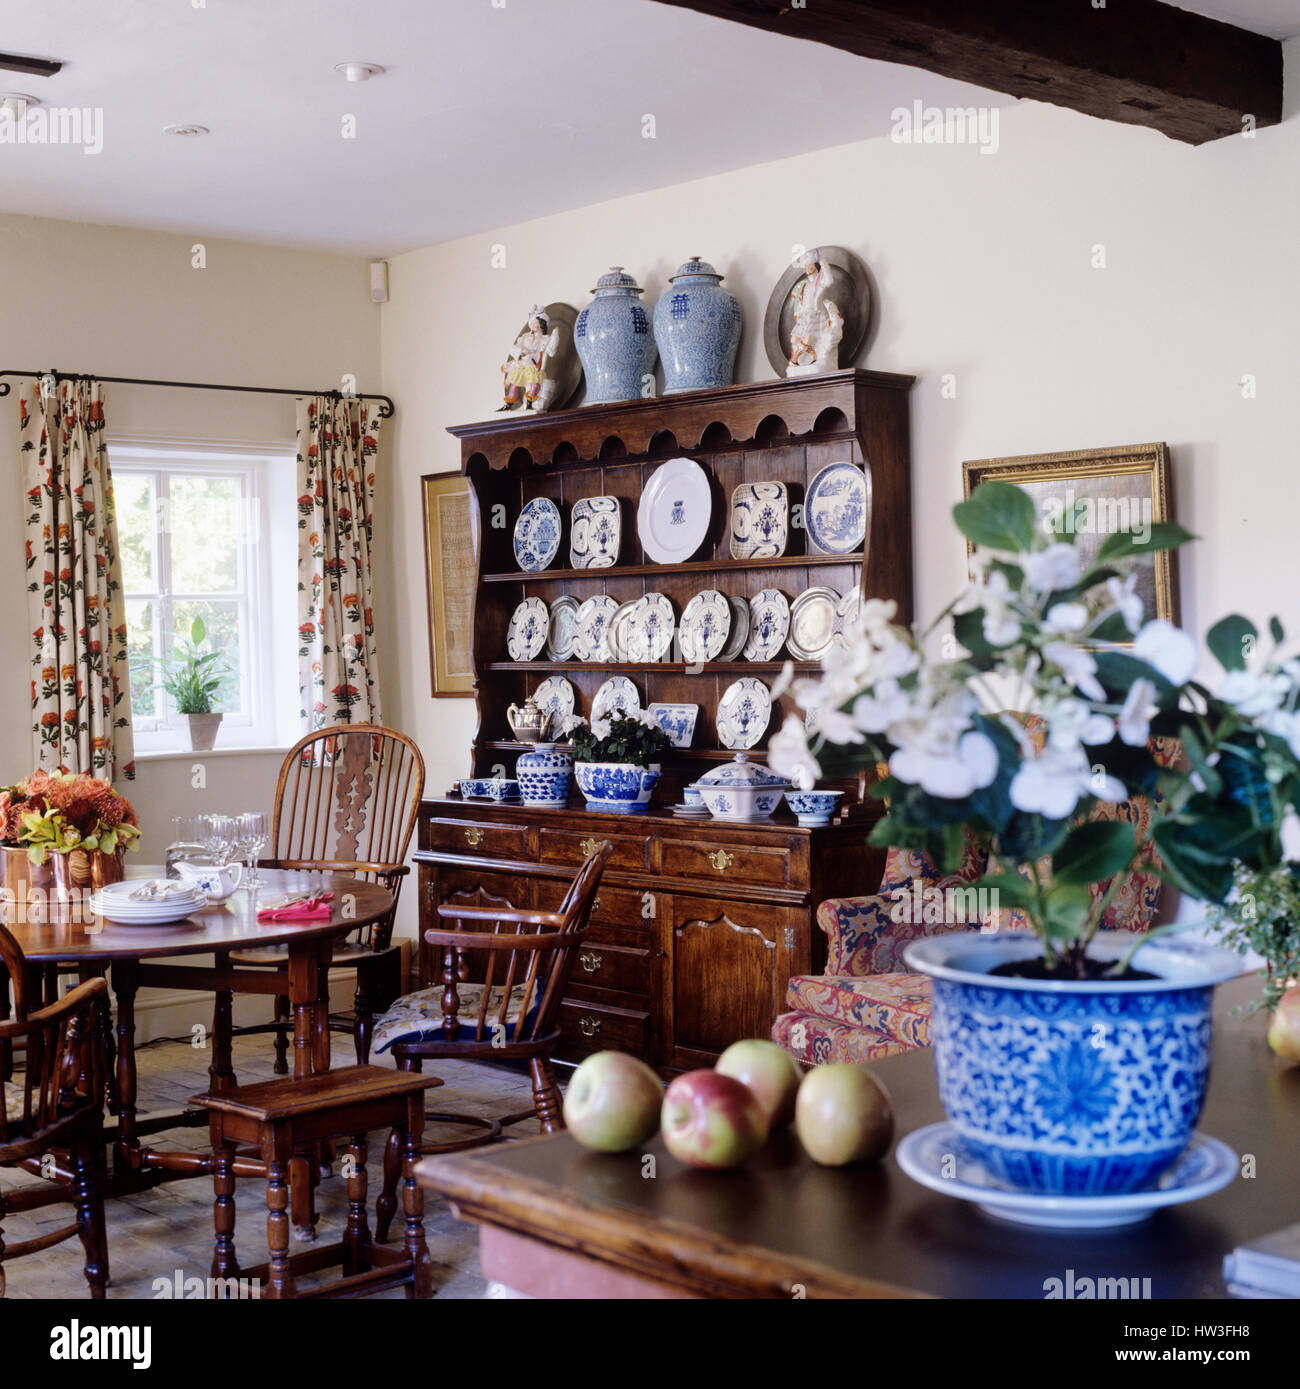 Dining room with shelves of plates on display Stock Photo ...